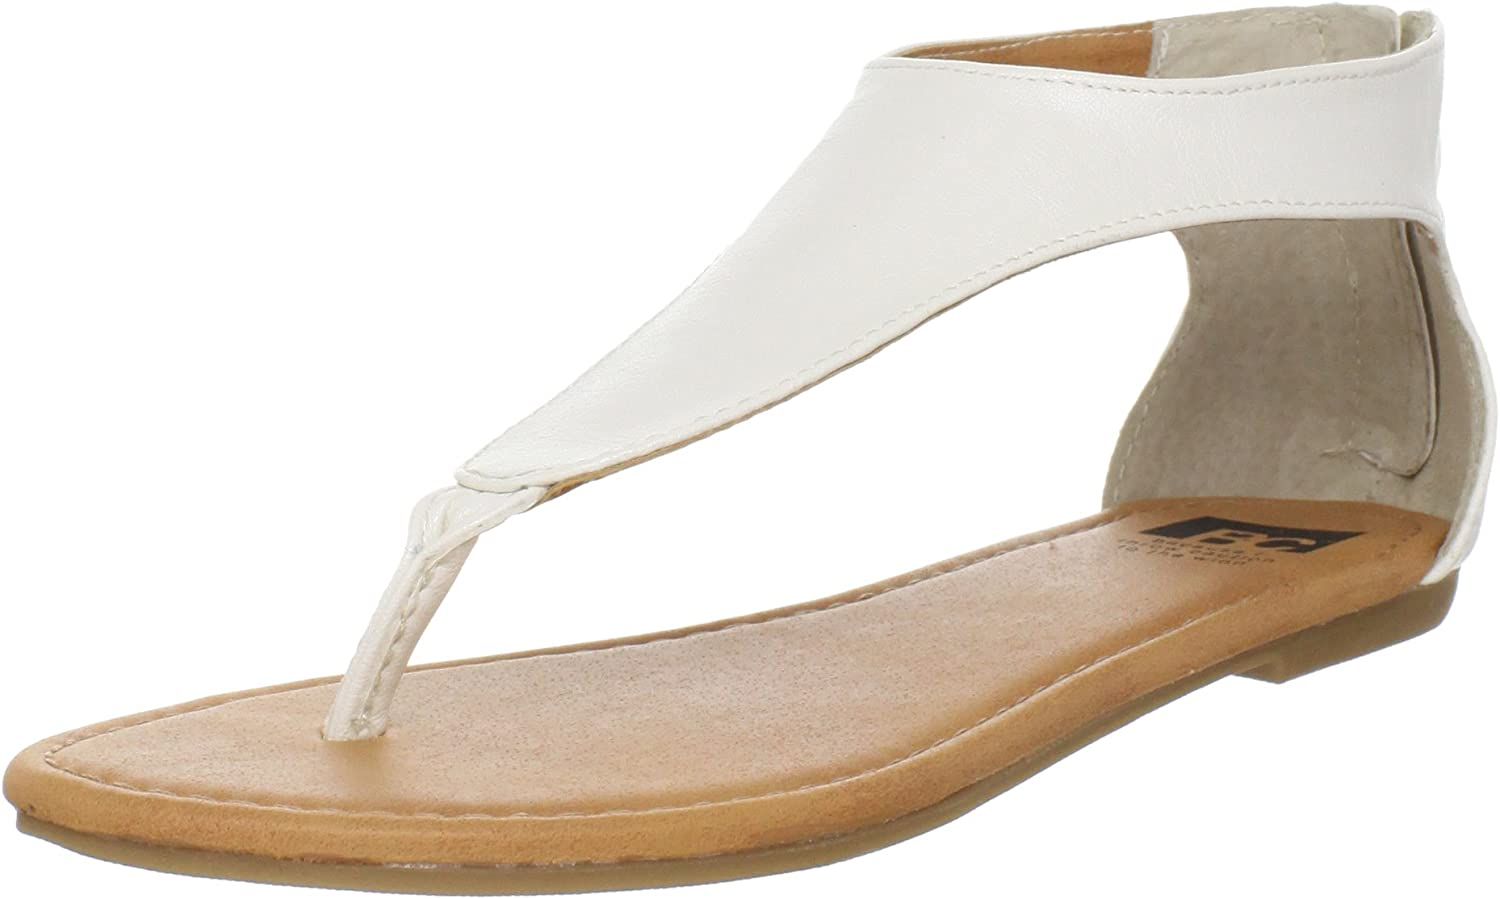 Max 51% OFF BC Footwear Women's Green-Eyed Monster Sandal 70% OFF Outlet Thong